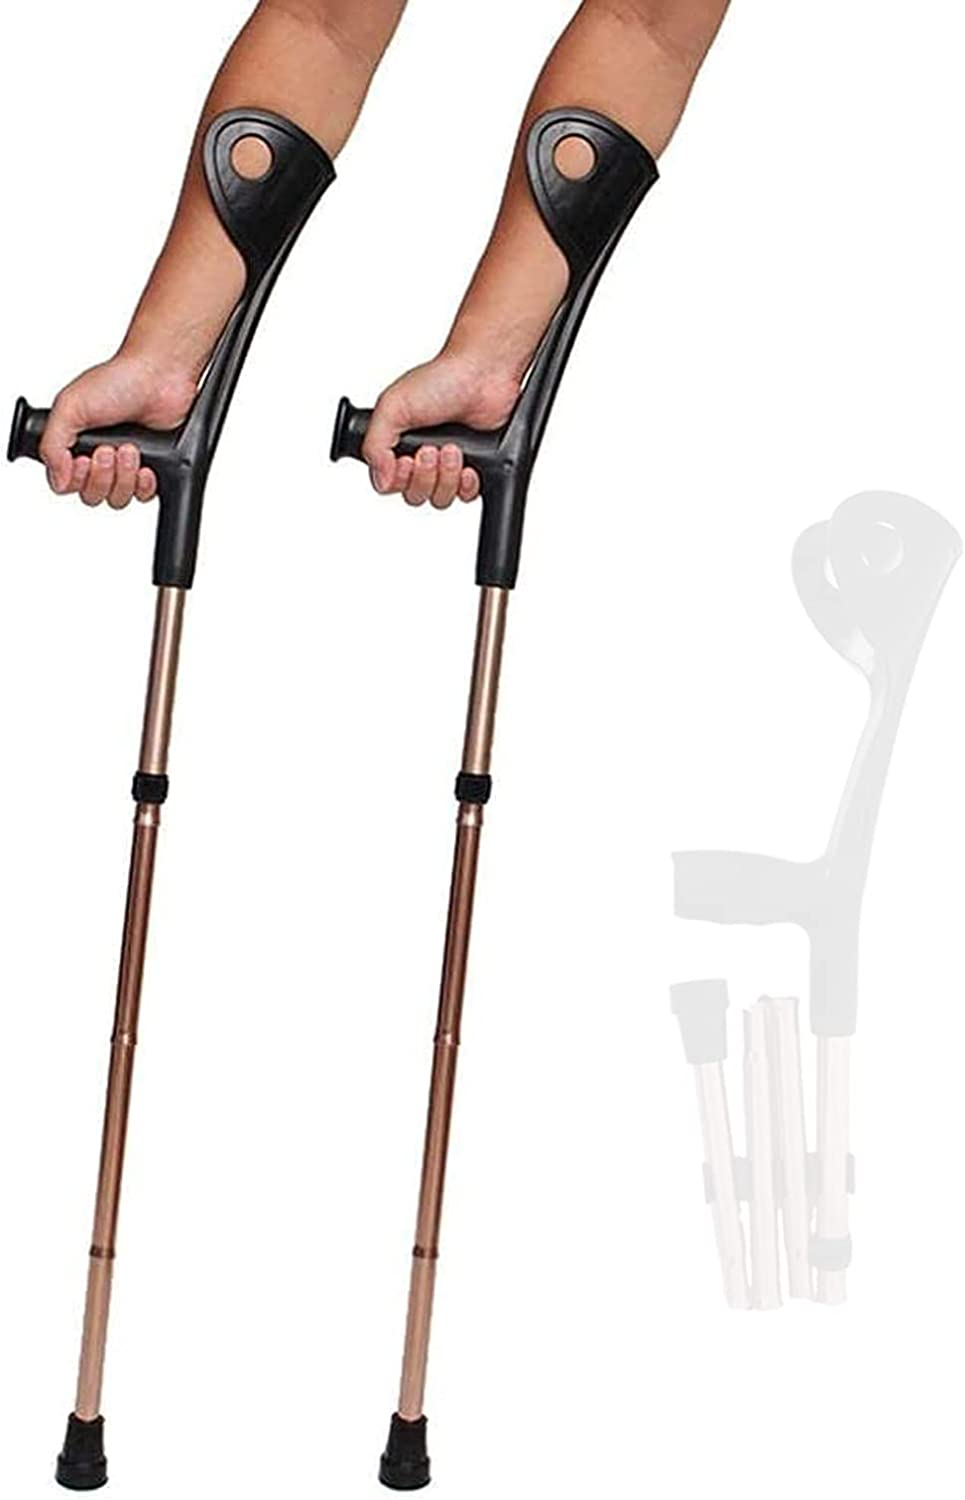 STXMY Lightweight Forearm Max 48% OFF Crutches for Adults Heavy Opening large release sale Du Foldable